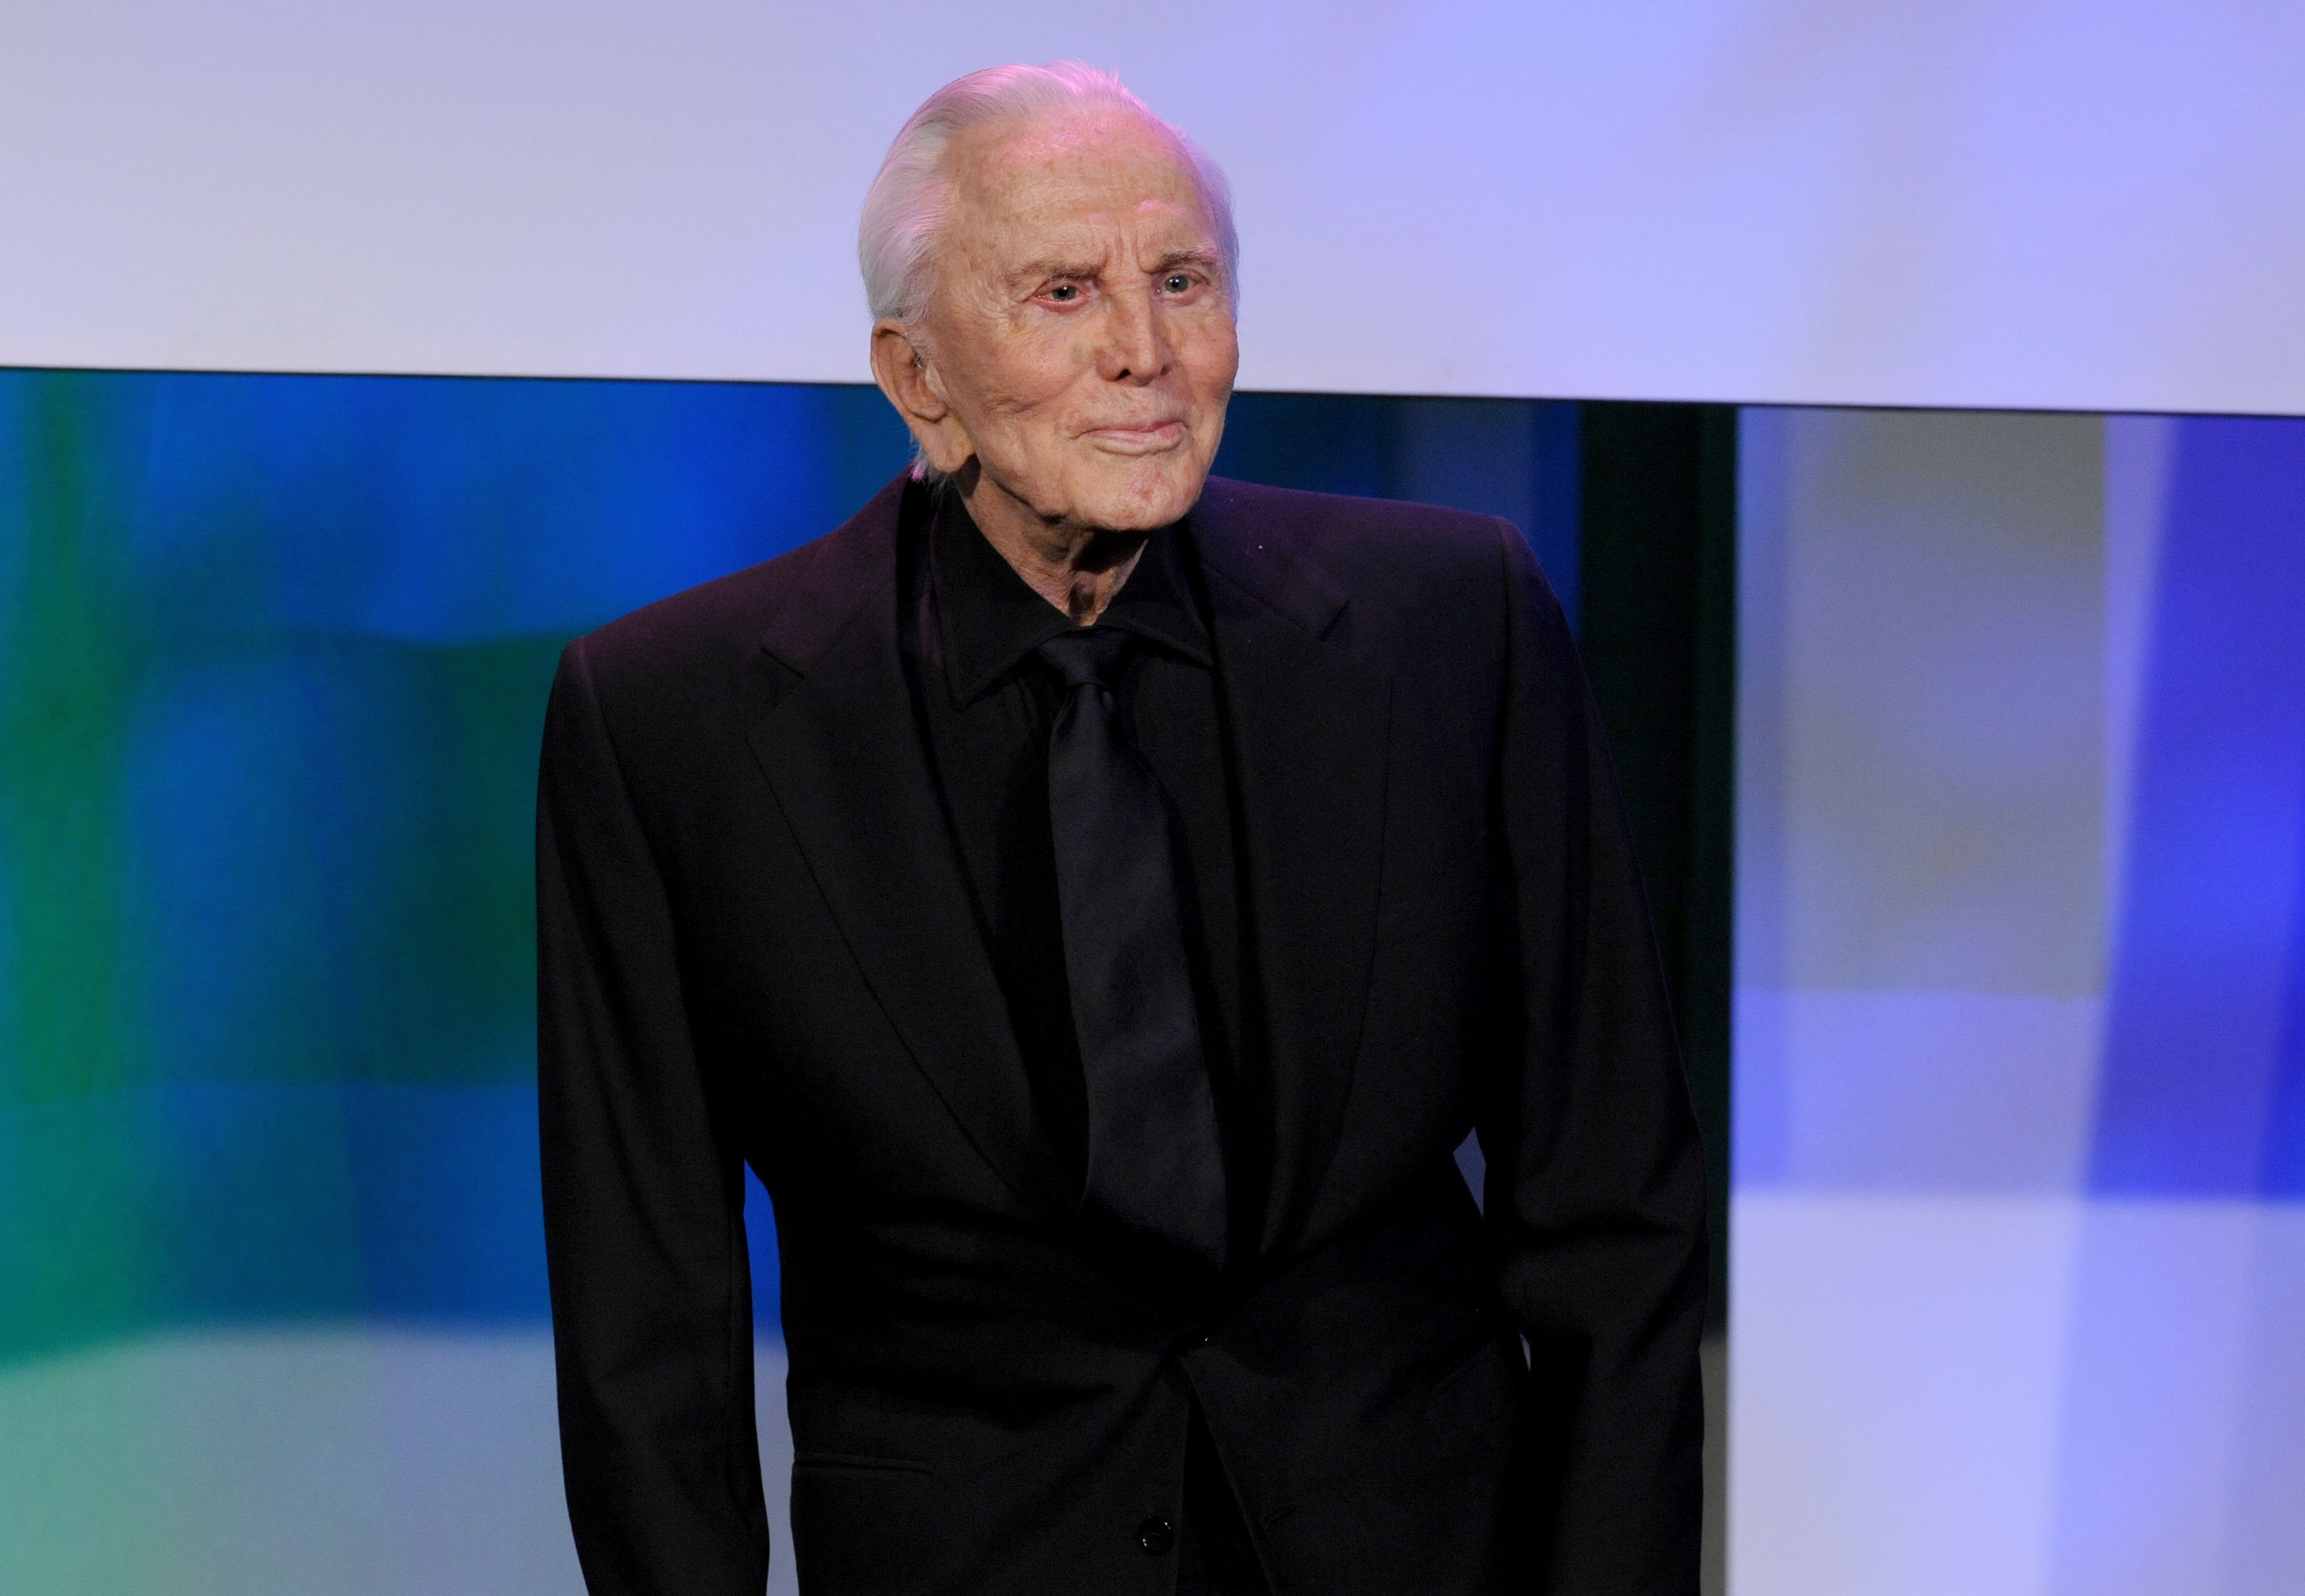 Kirk Douglas speaks onstage at the ADL Los Angeles Dinner Honoring Steven Spielberg at The Beverly Hilton Hotel on December 9, 2009 | Photo: GettyImages